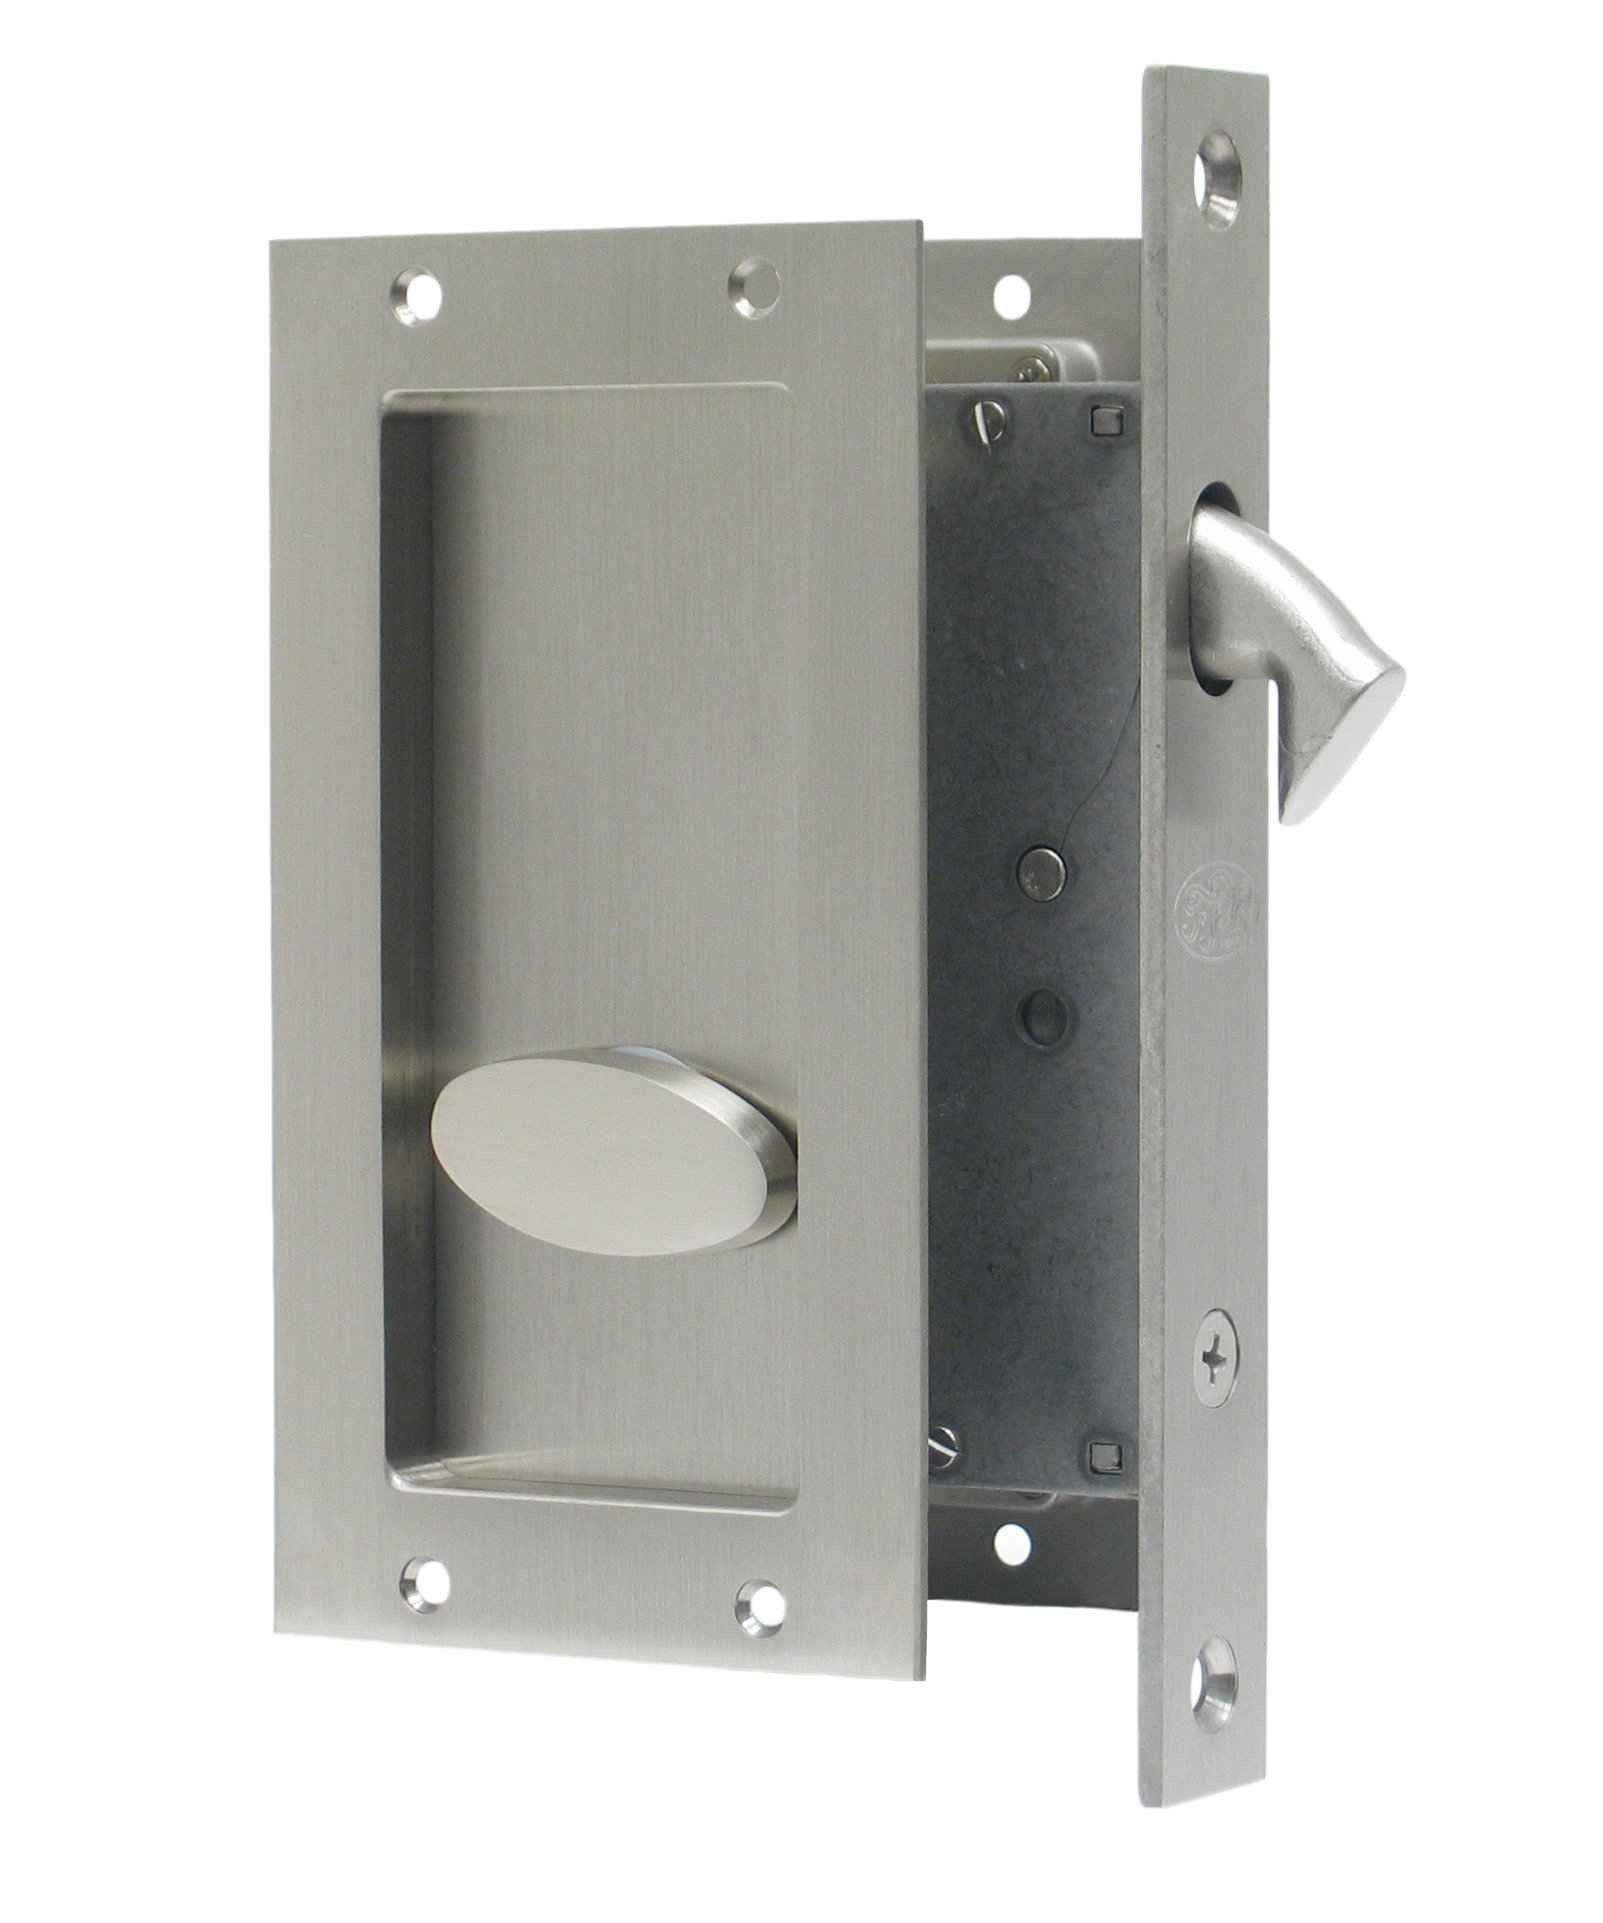 Anacapa by FPL- Solid Brass Modern Pocket Door Mortise Lock Set in Privacy - Bed / Bath Function - Satin Nickel